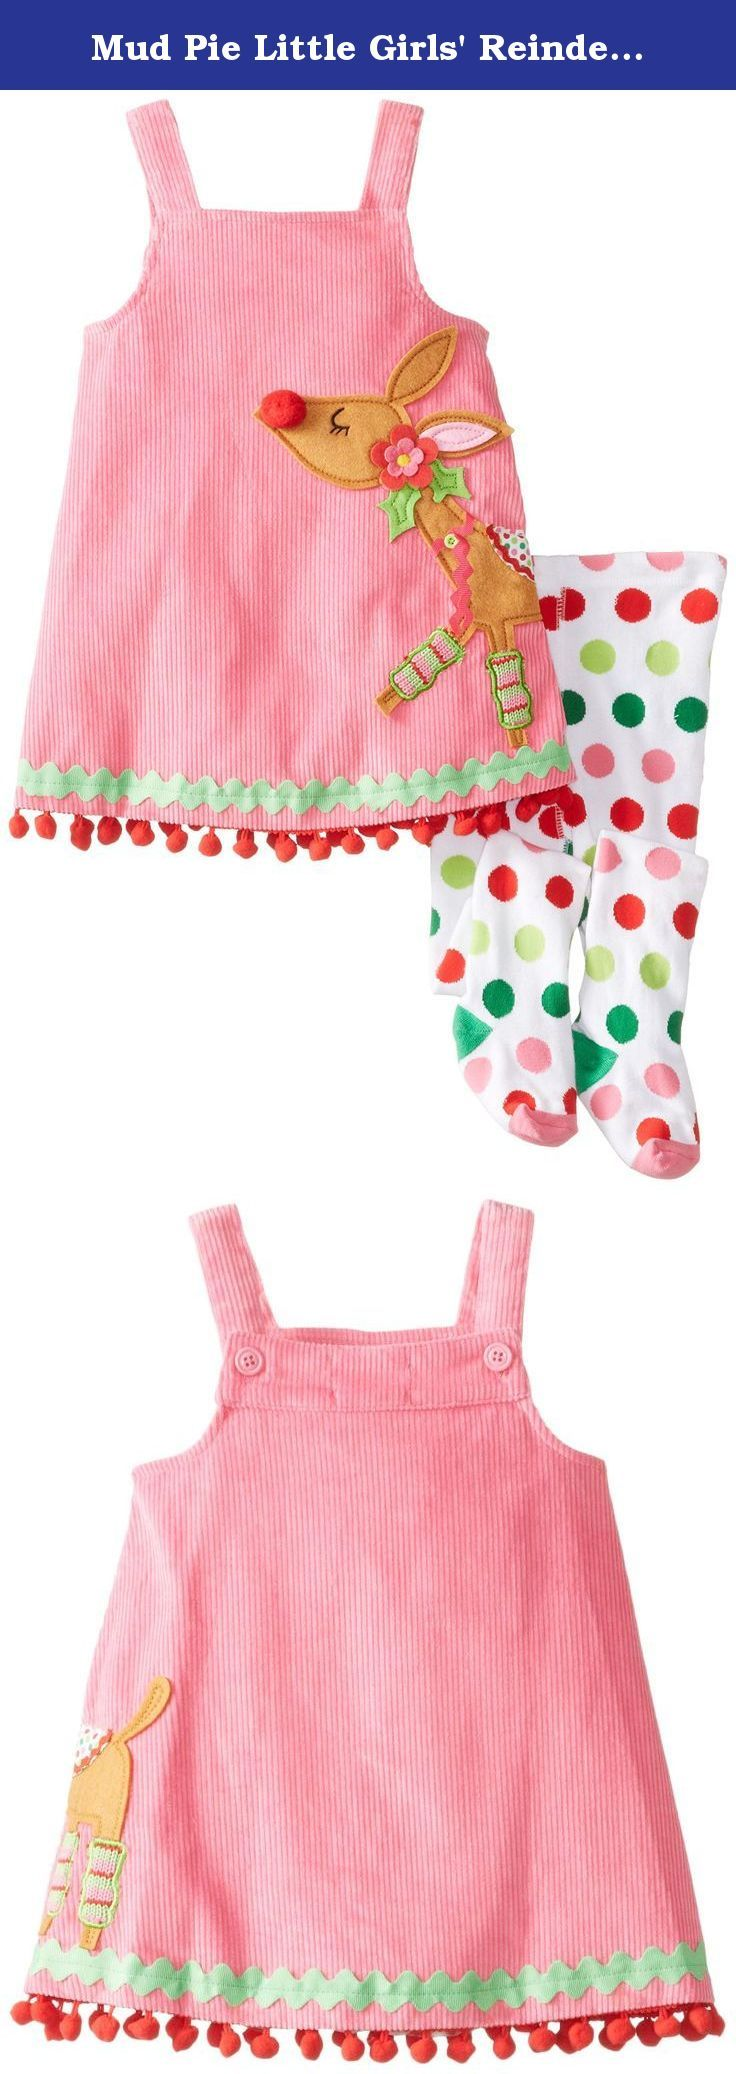 Mud Pie Little Girls' Reindeer Jumper and Tights, Pink, 4T. 2-piece set. Pink corduroy jumper buttons in back and features dimensional reindeer applique, ric-rac and pom-pom trim. Comes with colorful polka dot cotton tights.